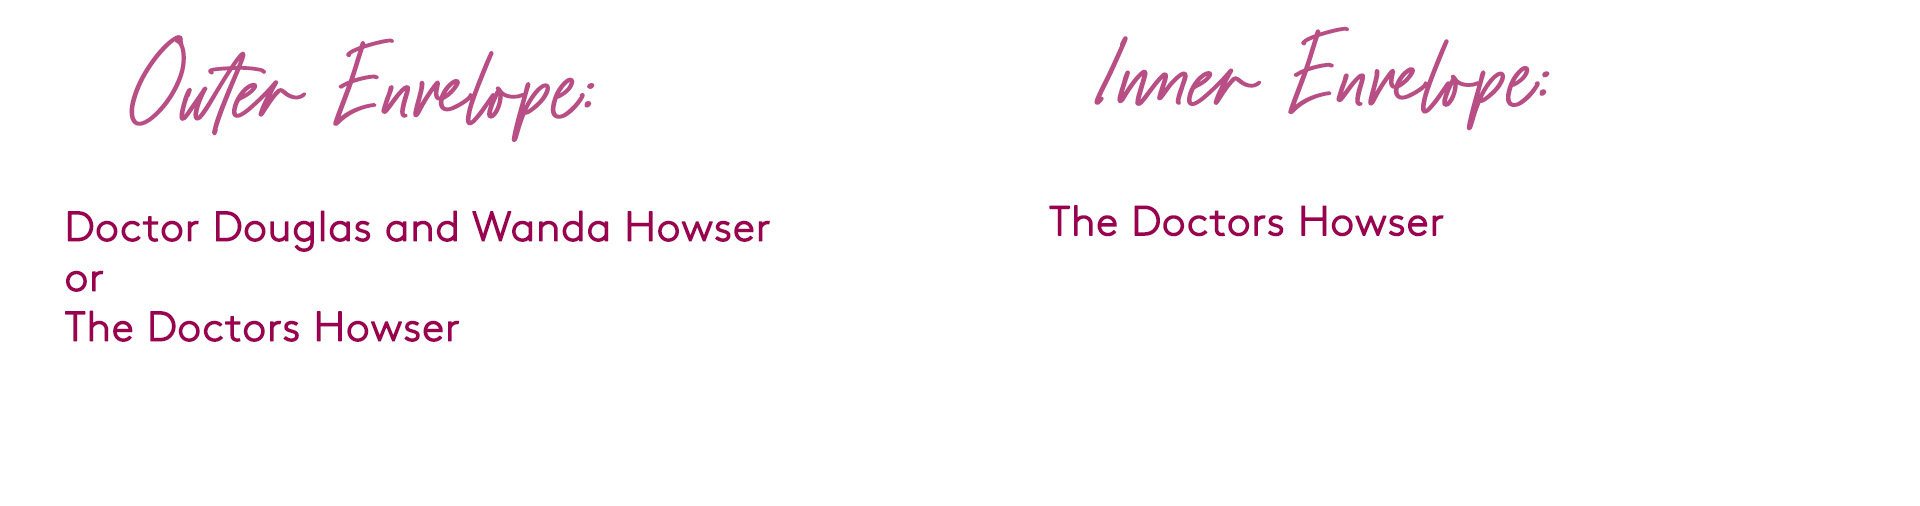 how to address wedding invitation to a couple where they are both doctors